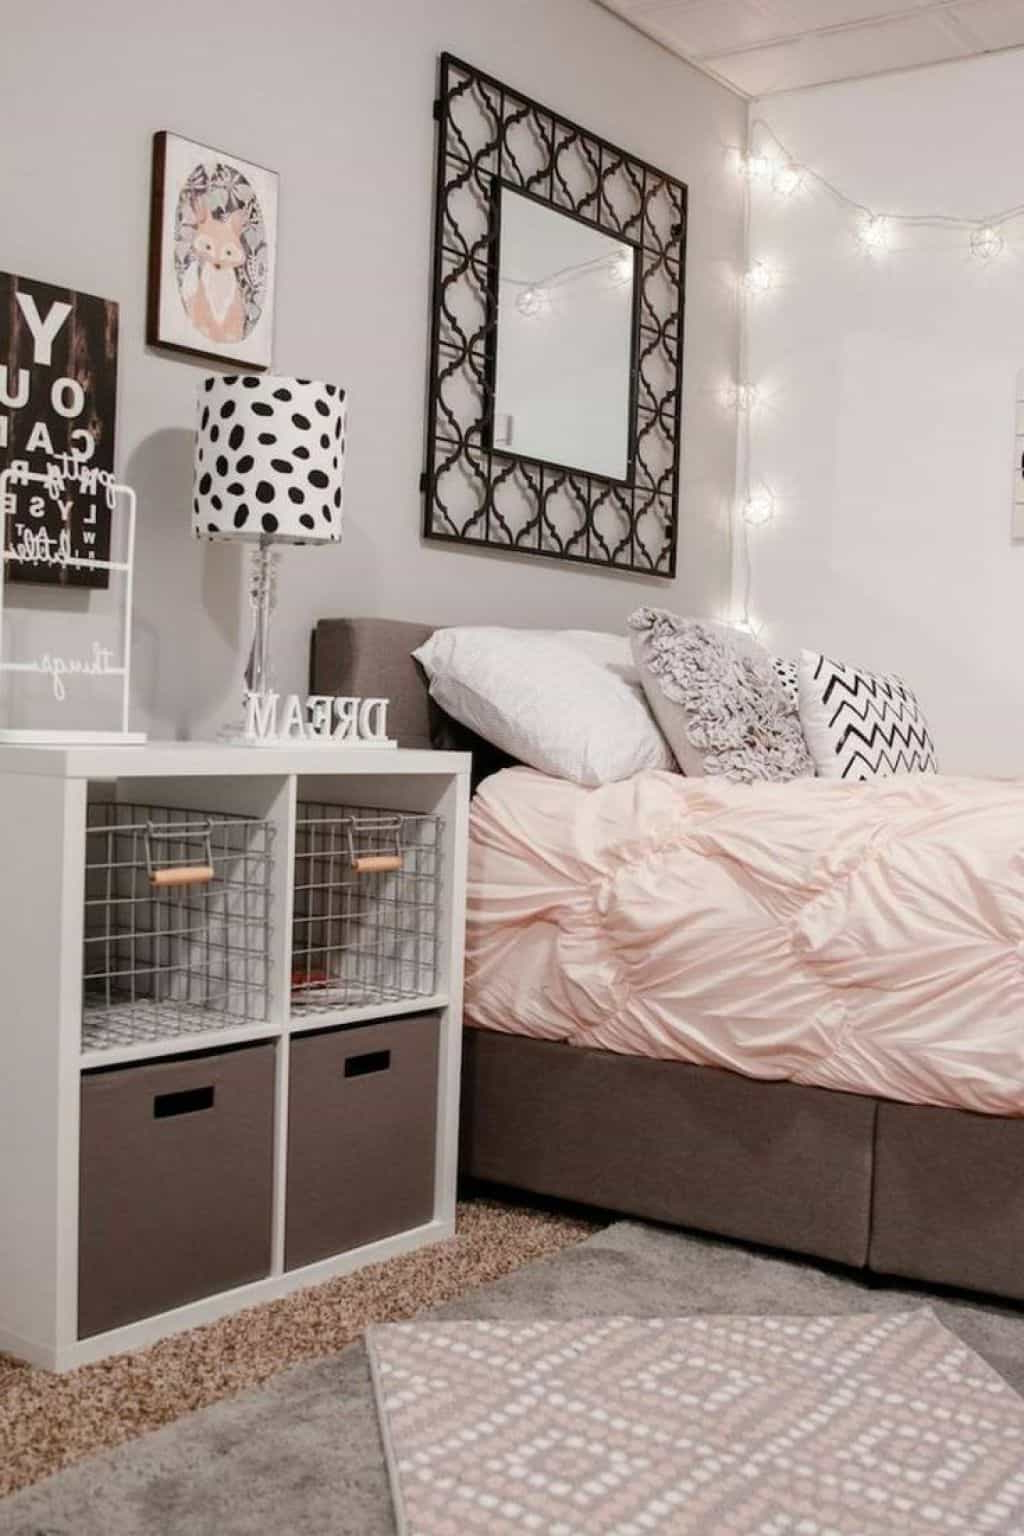 Small Bedroom With Wall Mirror And Baskets – Ideas To Organize Your With Best And Newest Wall Mirrors For Bedroom (View 6 of 20)